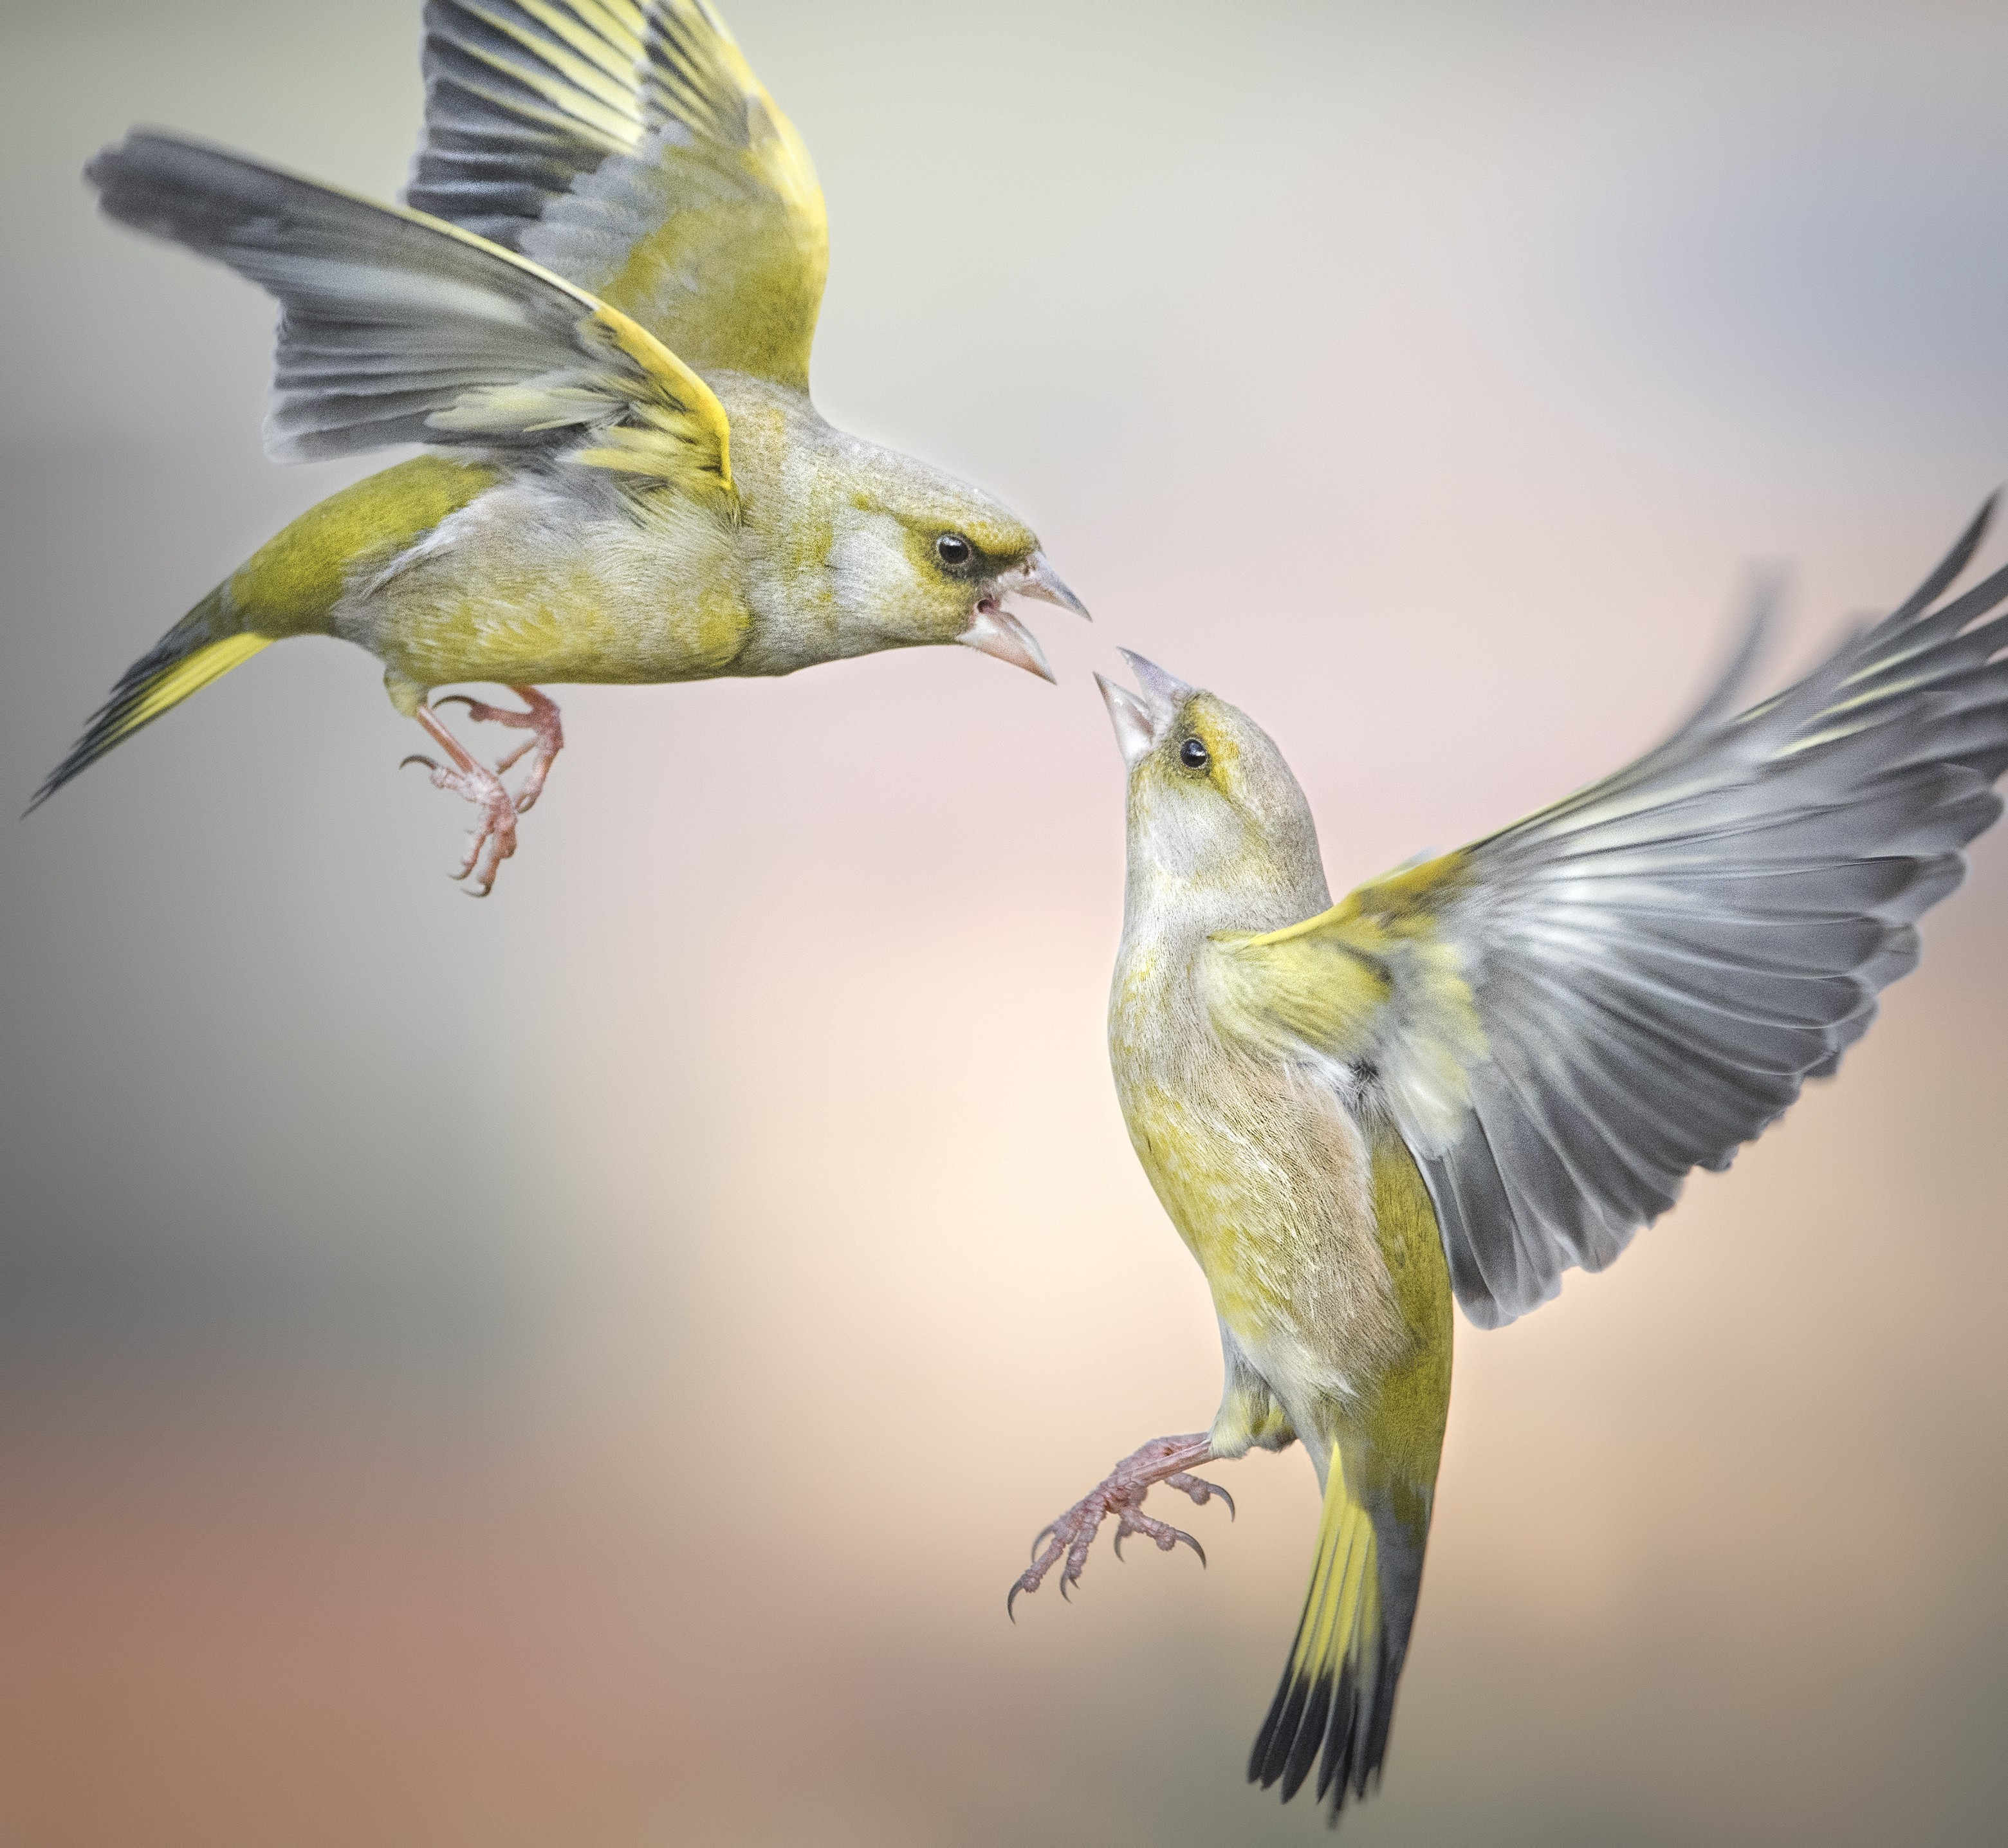 Two yellow birds suspended in mid air seem to be fussing at each other, their open mouths just a centimeter from each other